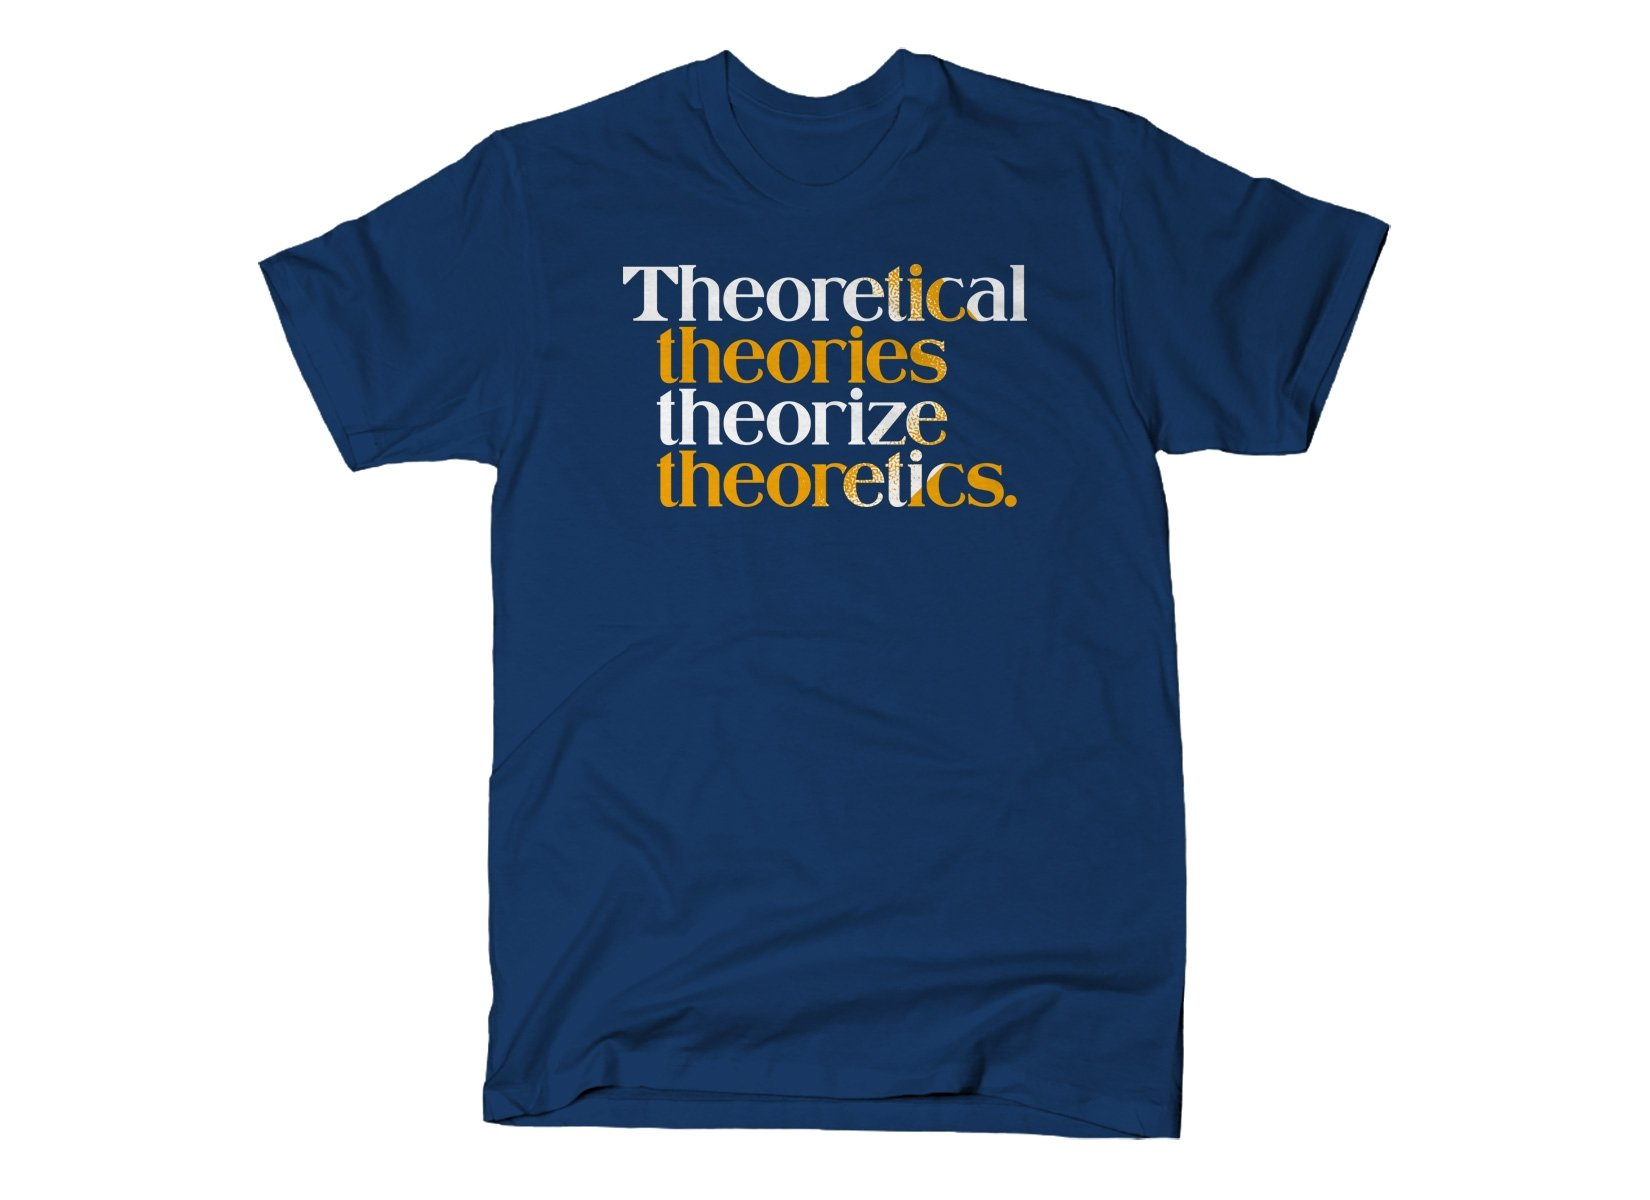 Theoretical Theories Theorize Theoretics on Mens T-Shirt